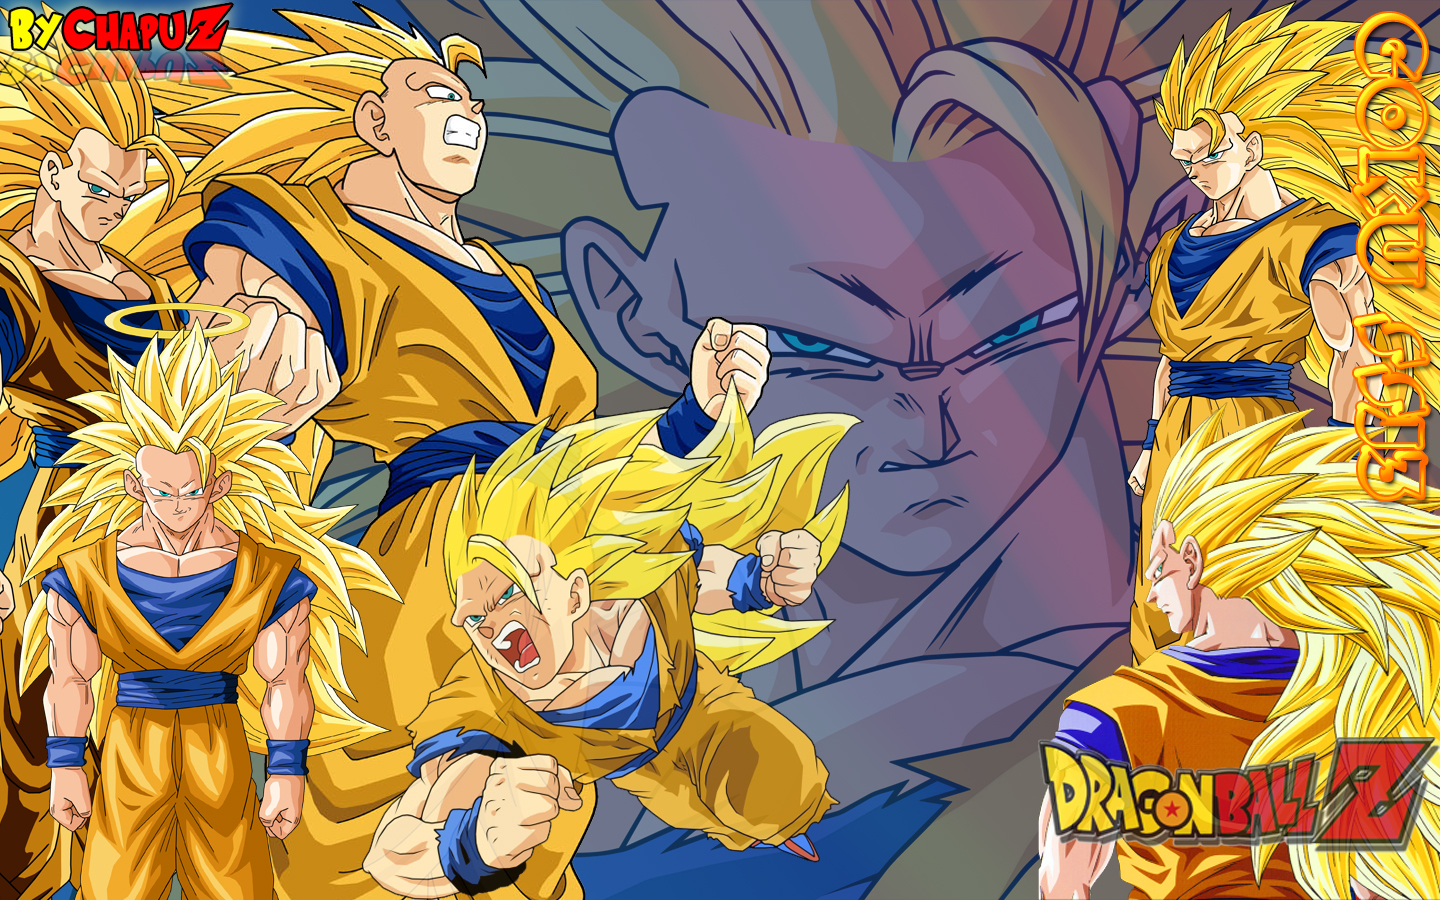 Fantasy dragon ball dragon ball wallpaper 1440x900 004 1440x900